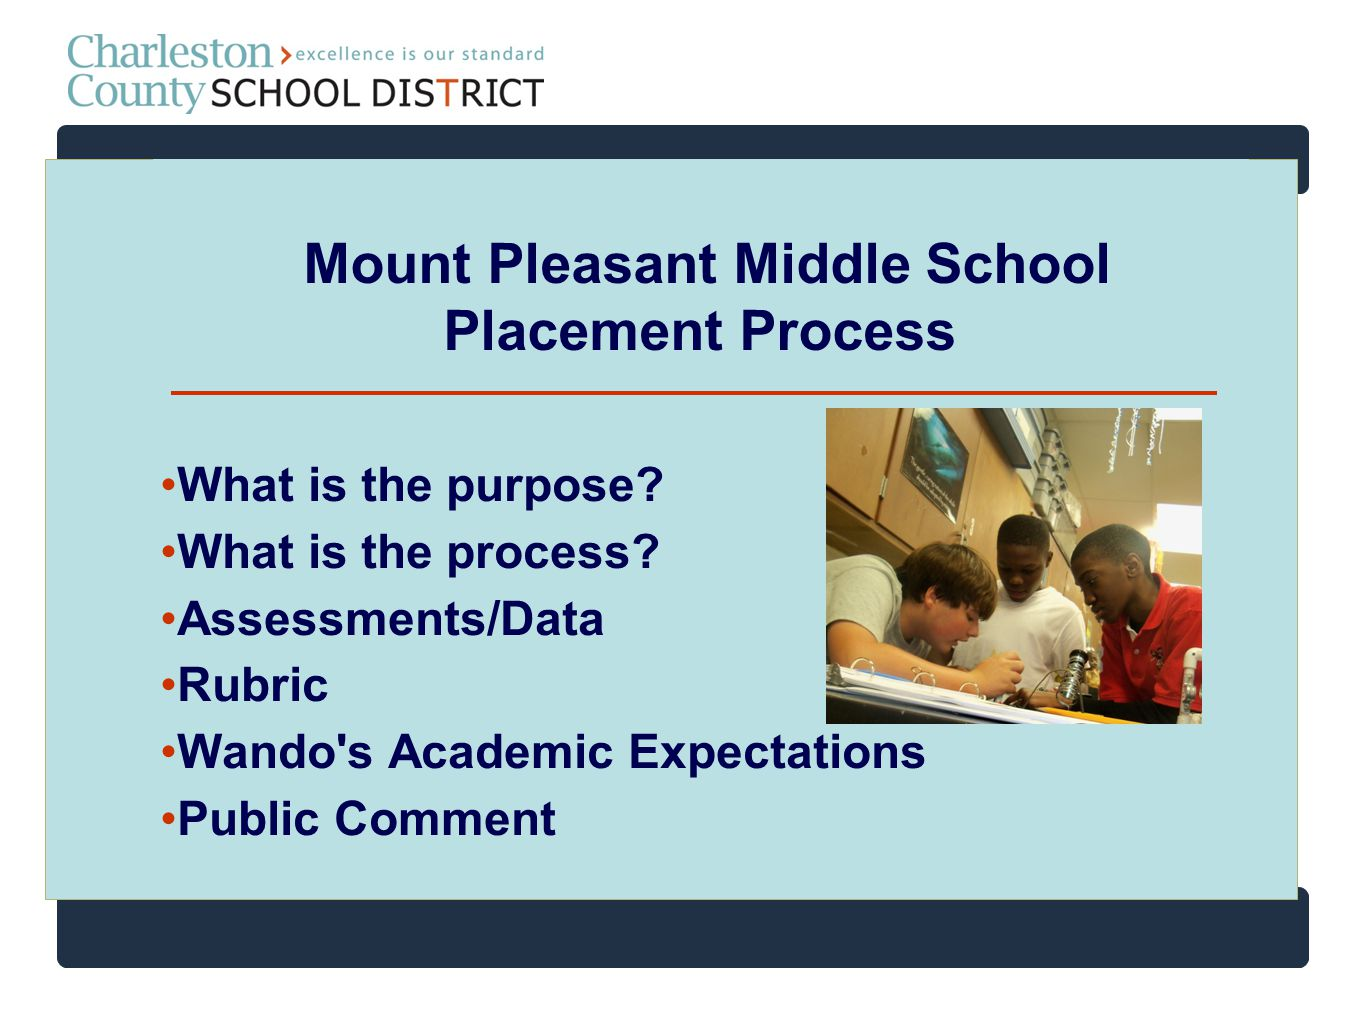 Purpose of Placement Place students into challenging classes Meet the needs of every child Place students into interventions Place students into honors and high school courses